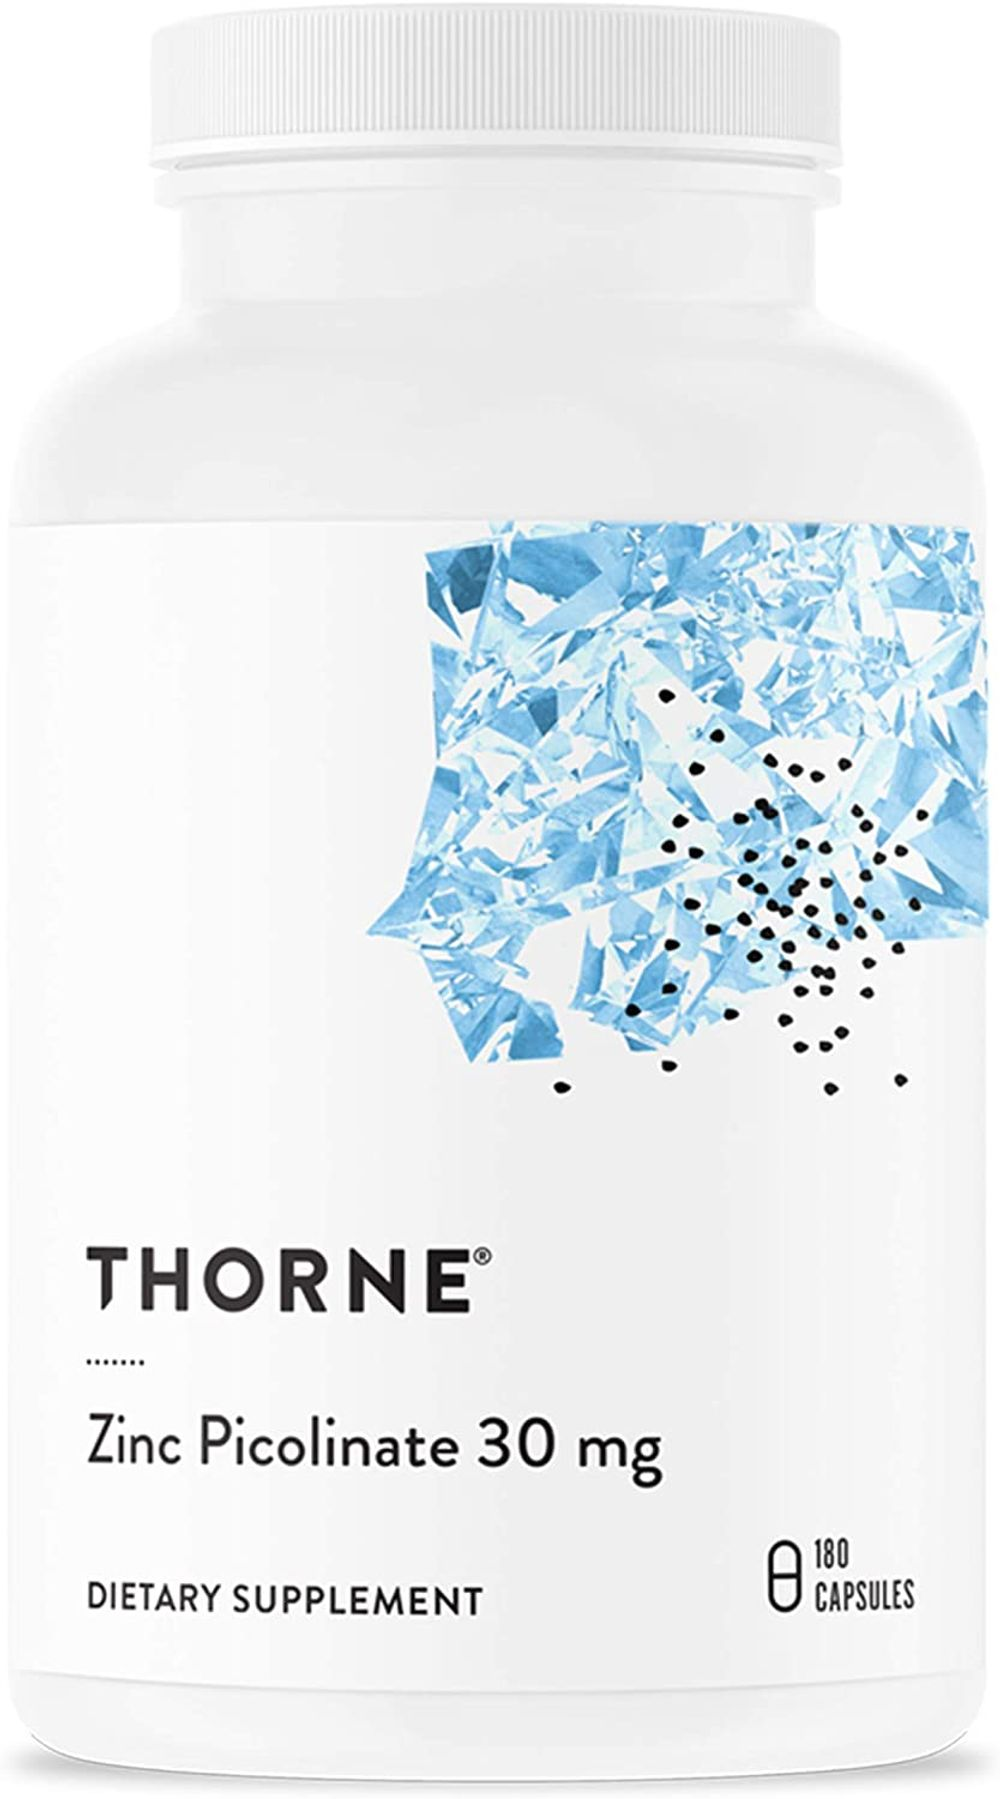 Thorne Research - Zinc Picolinate 30 mg - Well-Absorbed Zinc Supplement for Growth and Immune Function - 180 Capsules